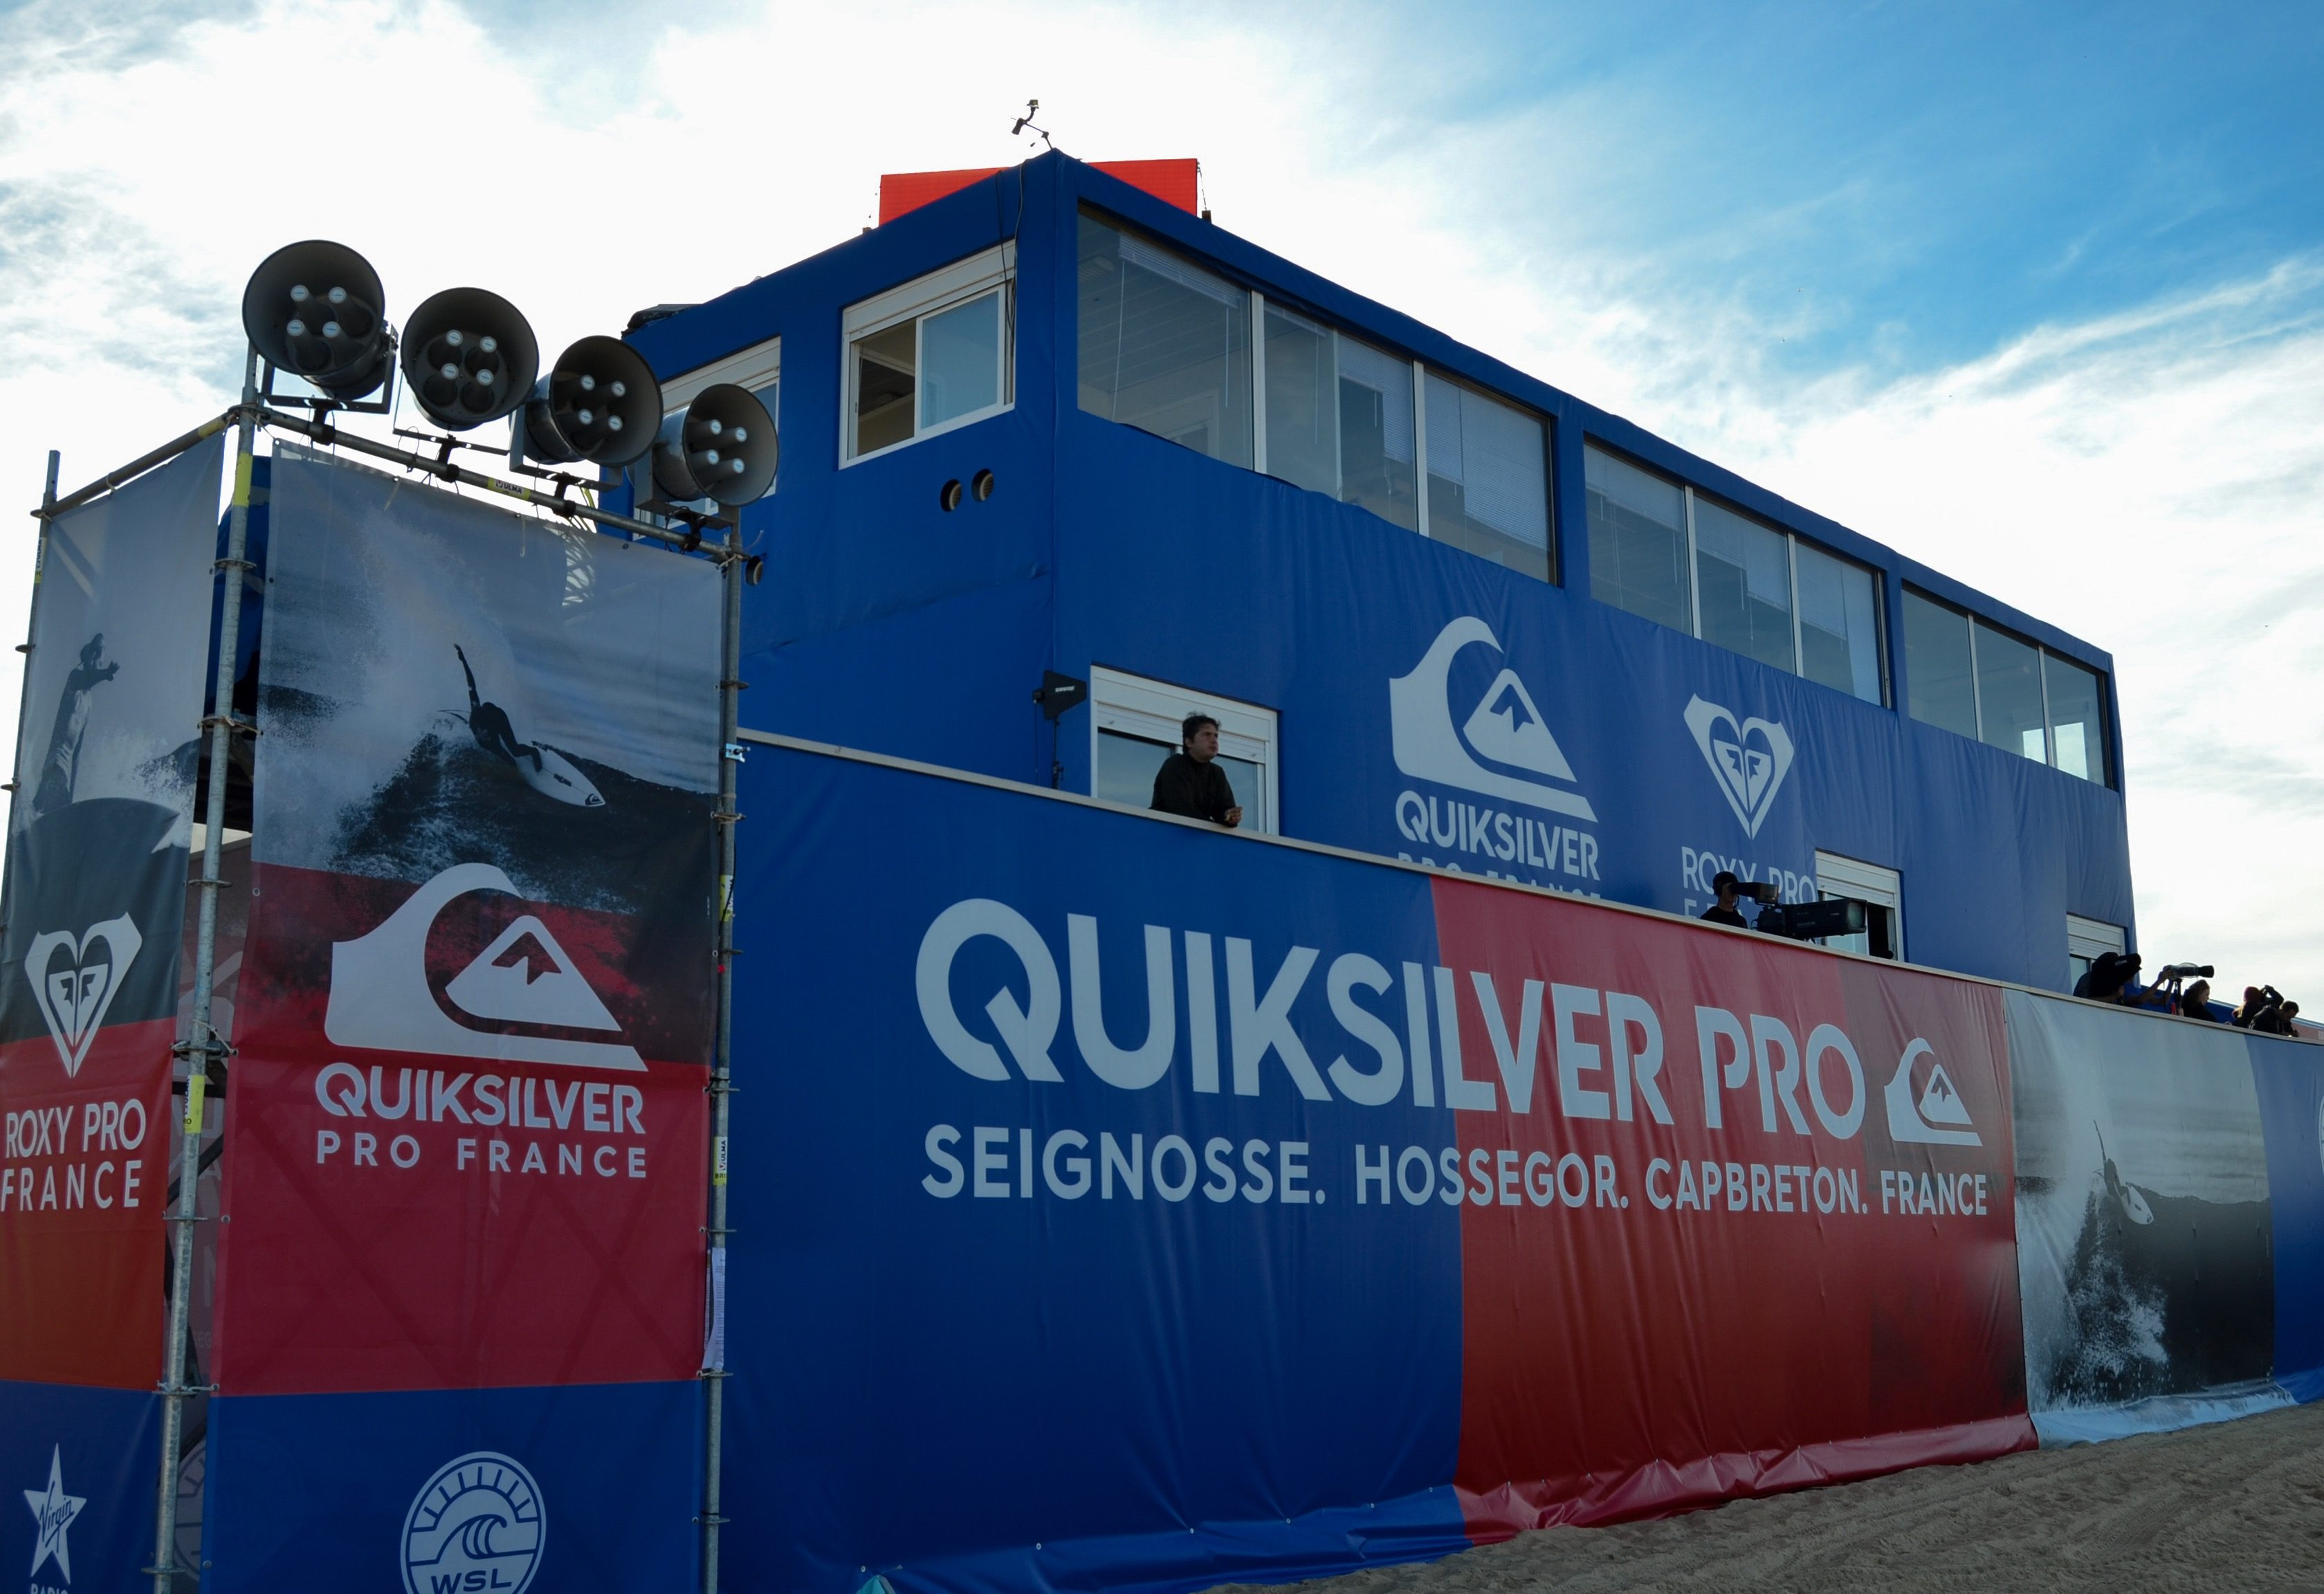 quiksilver-pro-france-roxy-pro-france-surf-quik-pro-roxy-pro-hossegor-culs-nuls-landes-wsl-vagues-presse-medias-world-surf-league-les-ptits-touristes-blog-voyage